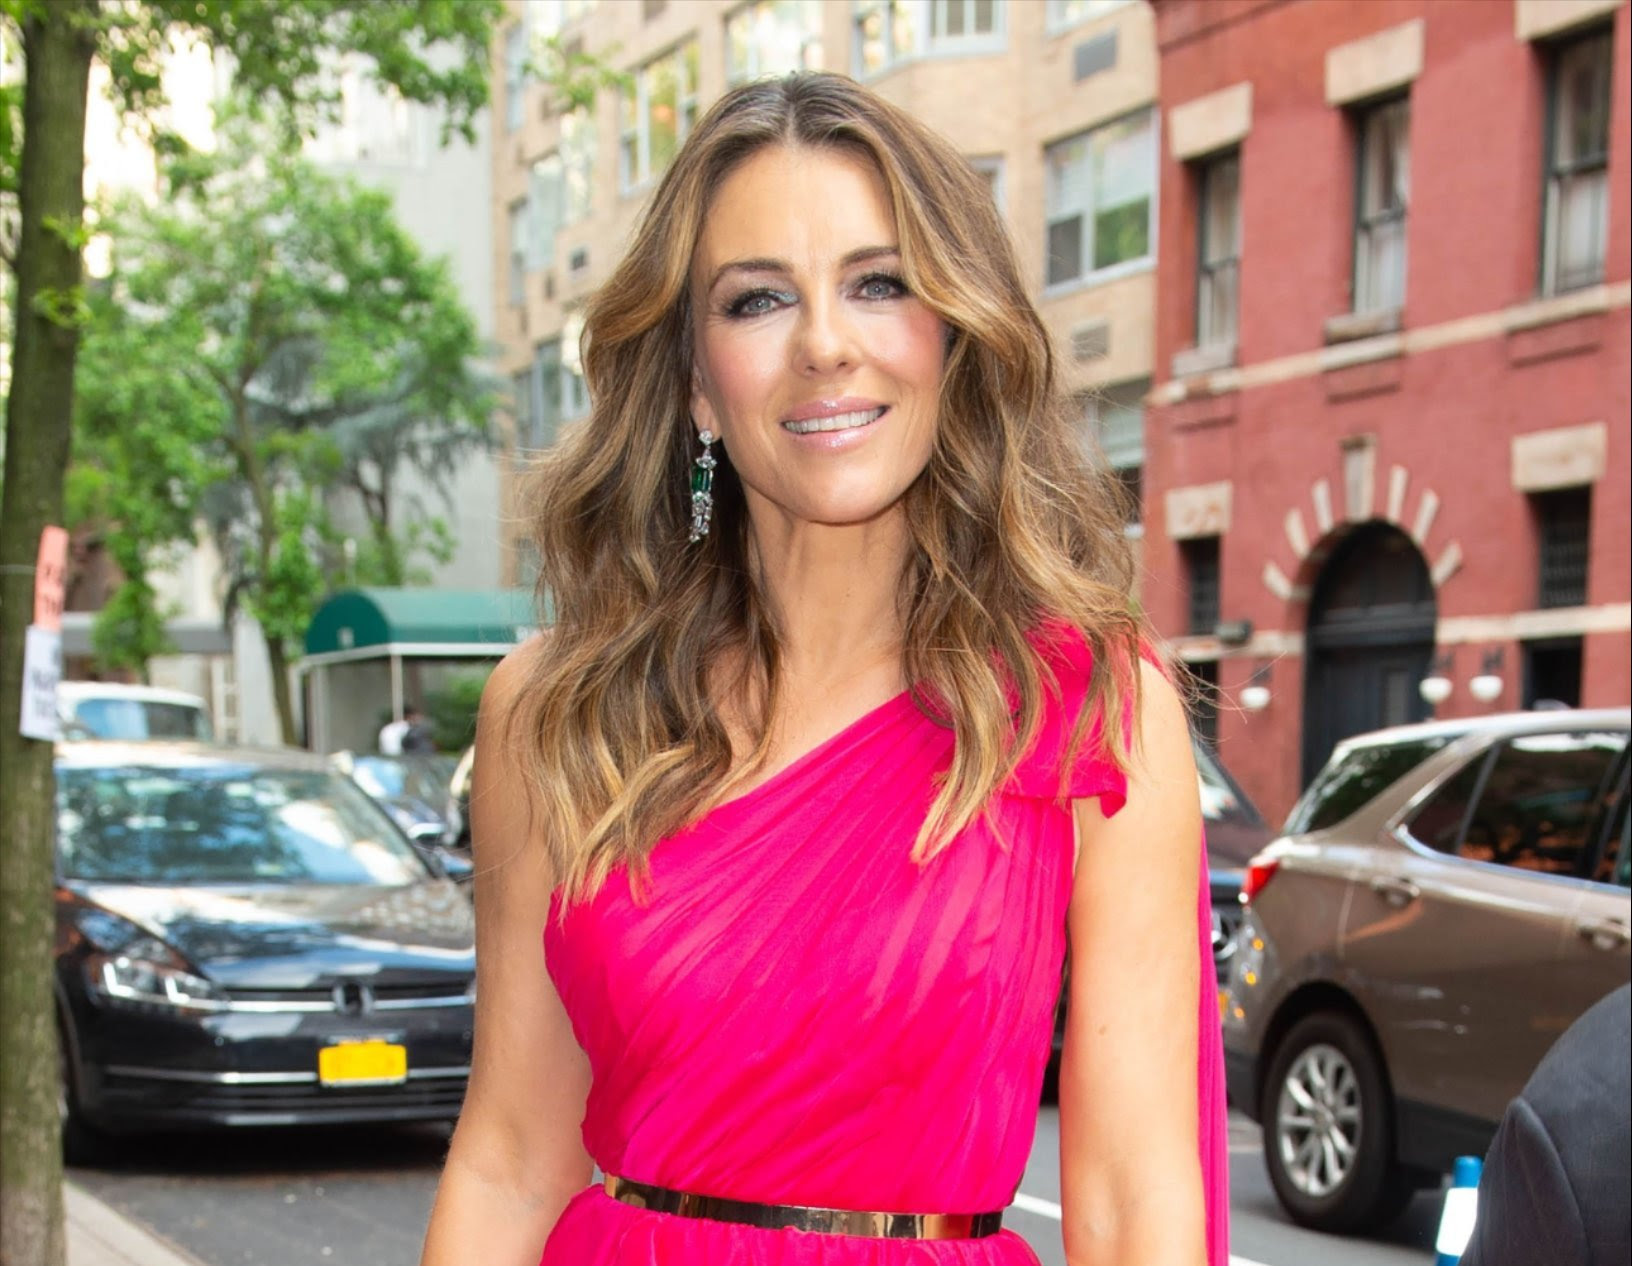 Diamond Rings, Elizabeth Hurley, The Fab Life